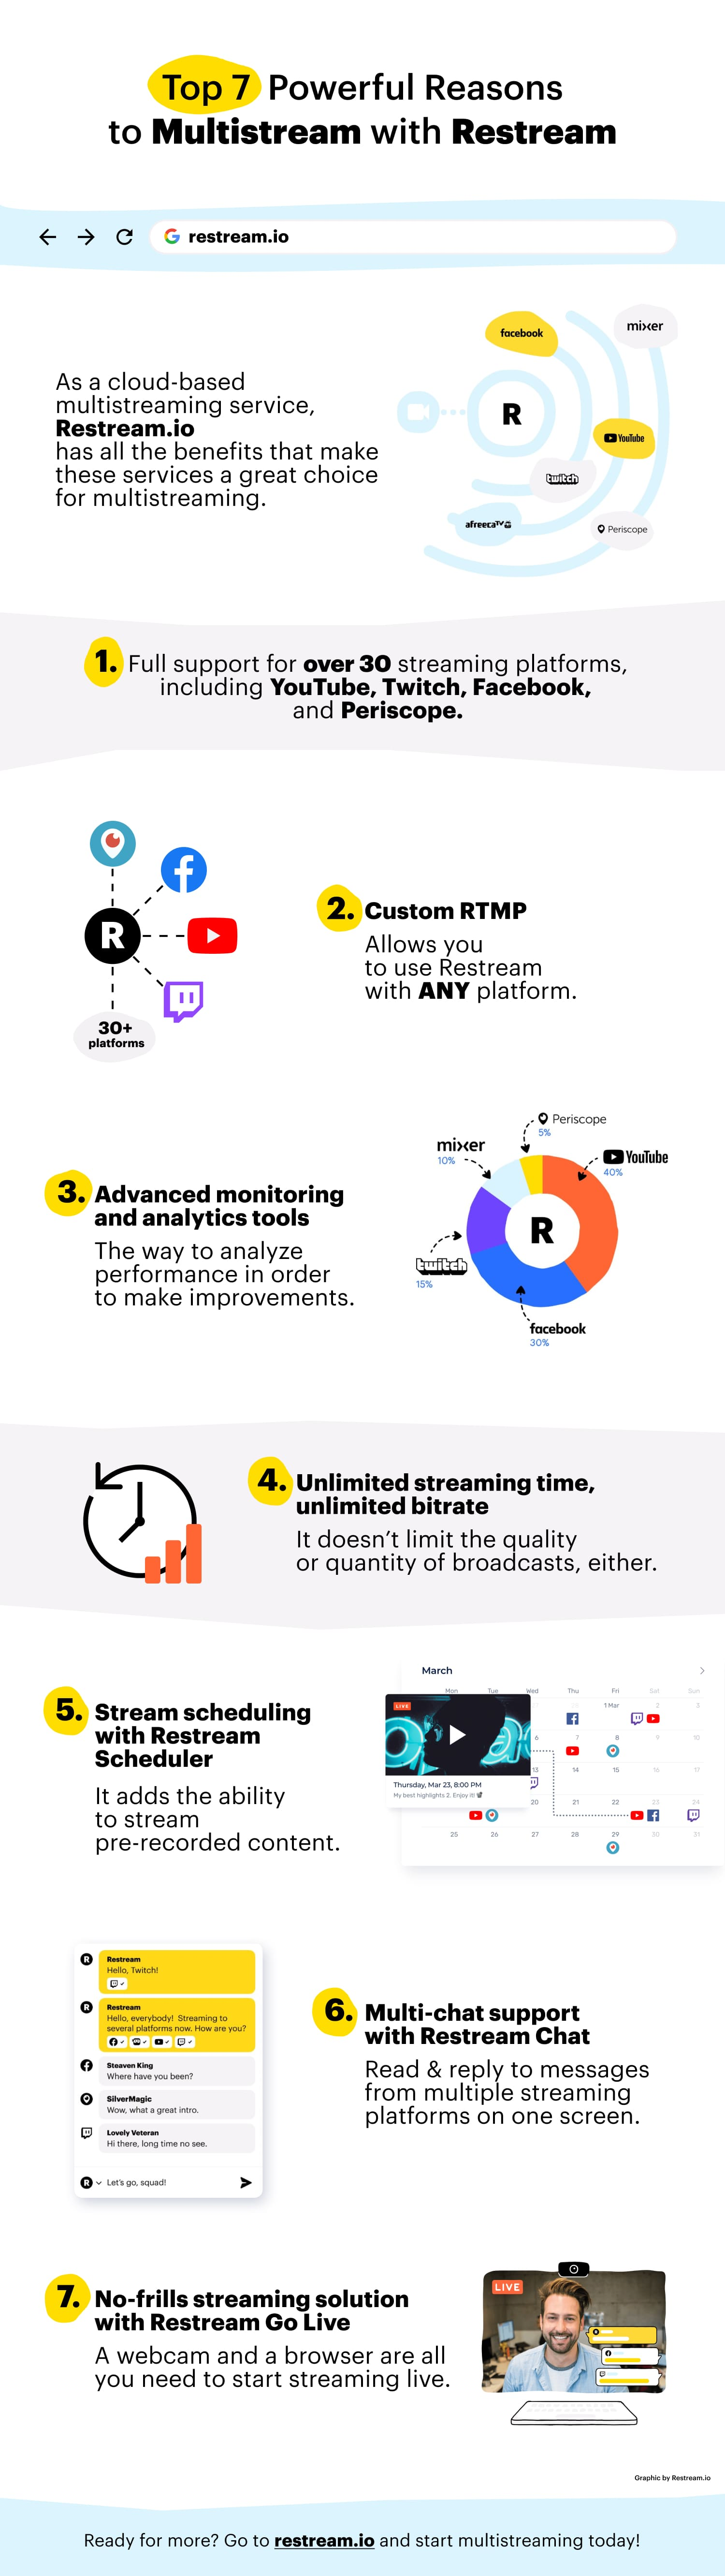 Infographic about reasons to multistream with Restream.io